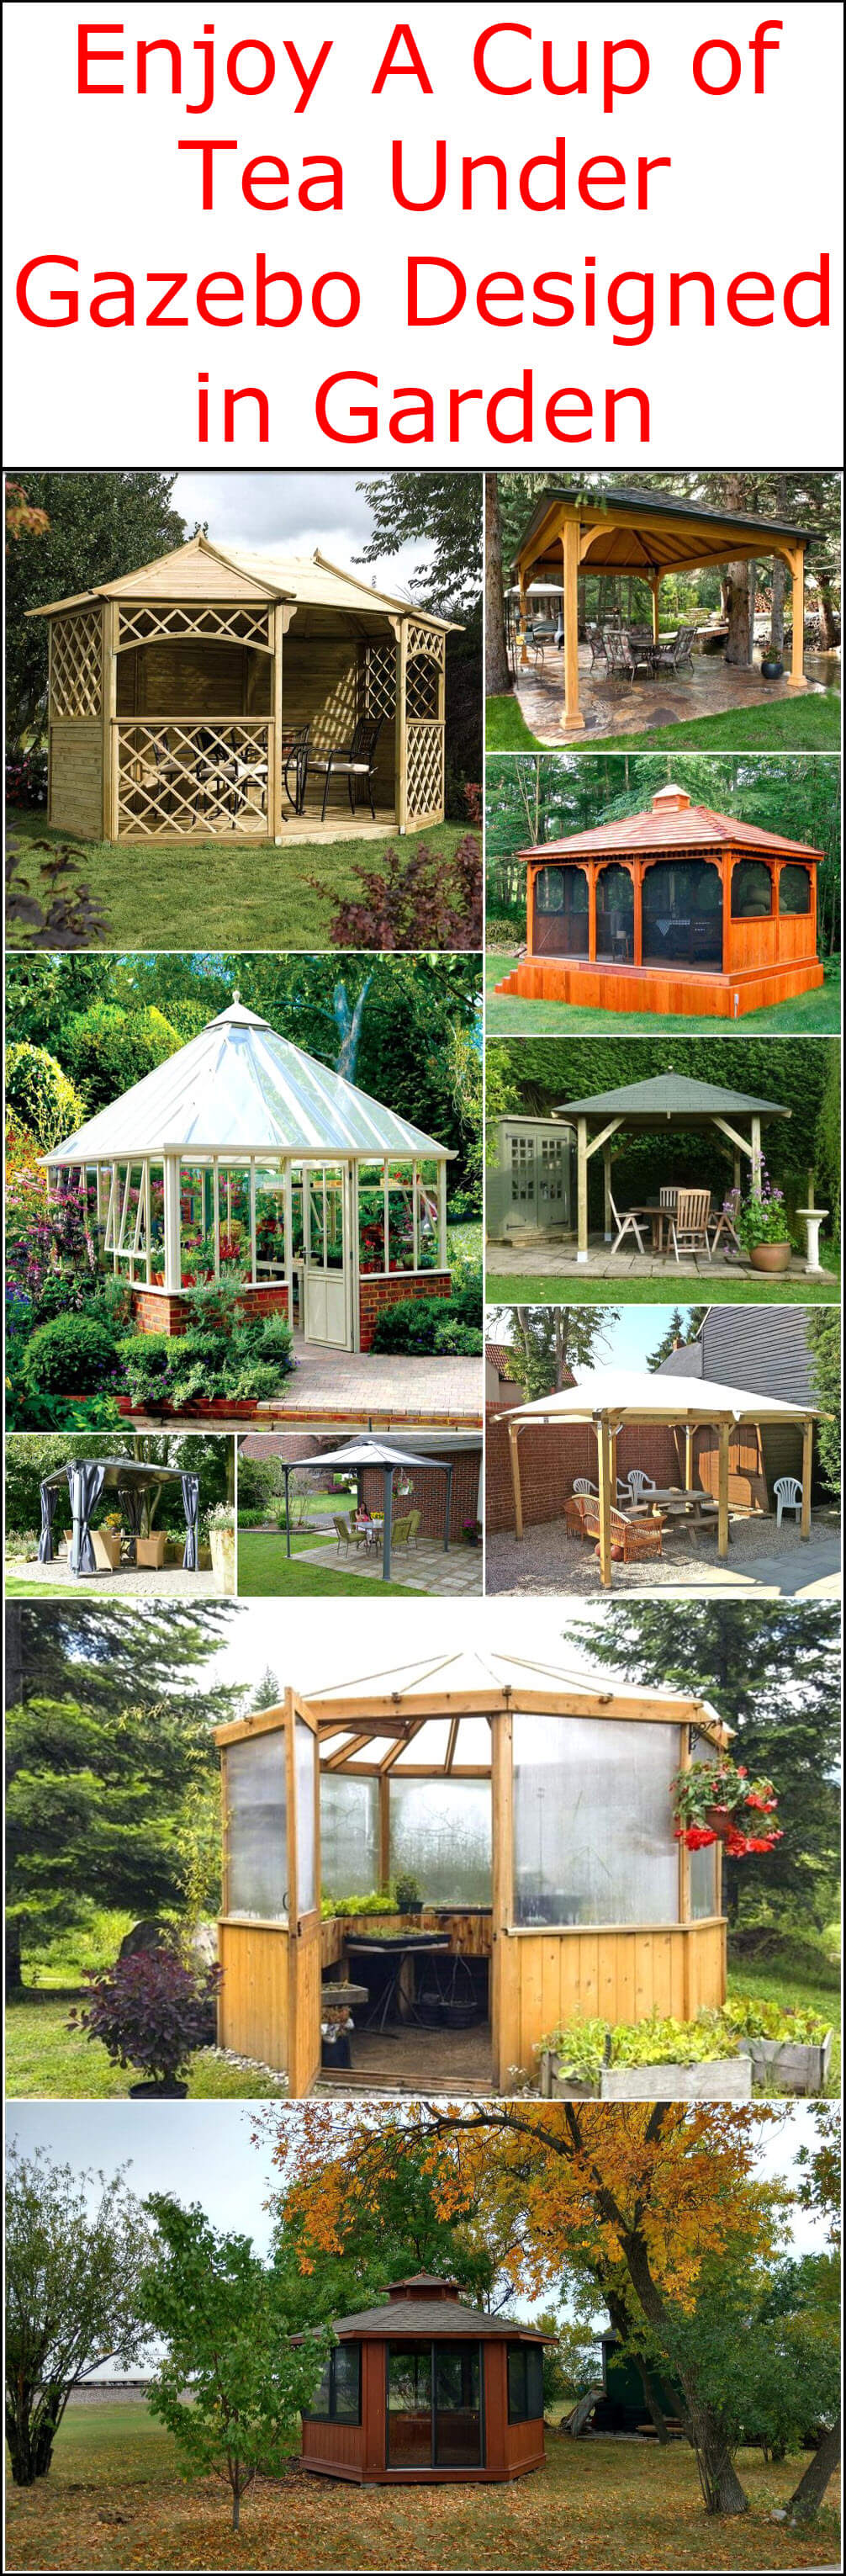 Enjoy A Cup of Tea Under Gazebo Designed in Garden